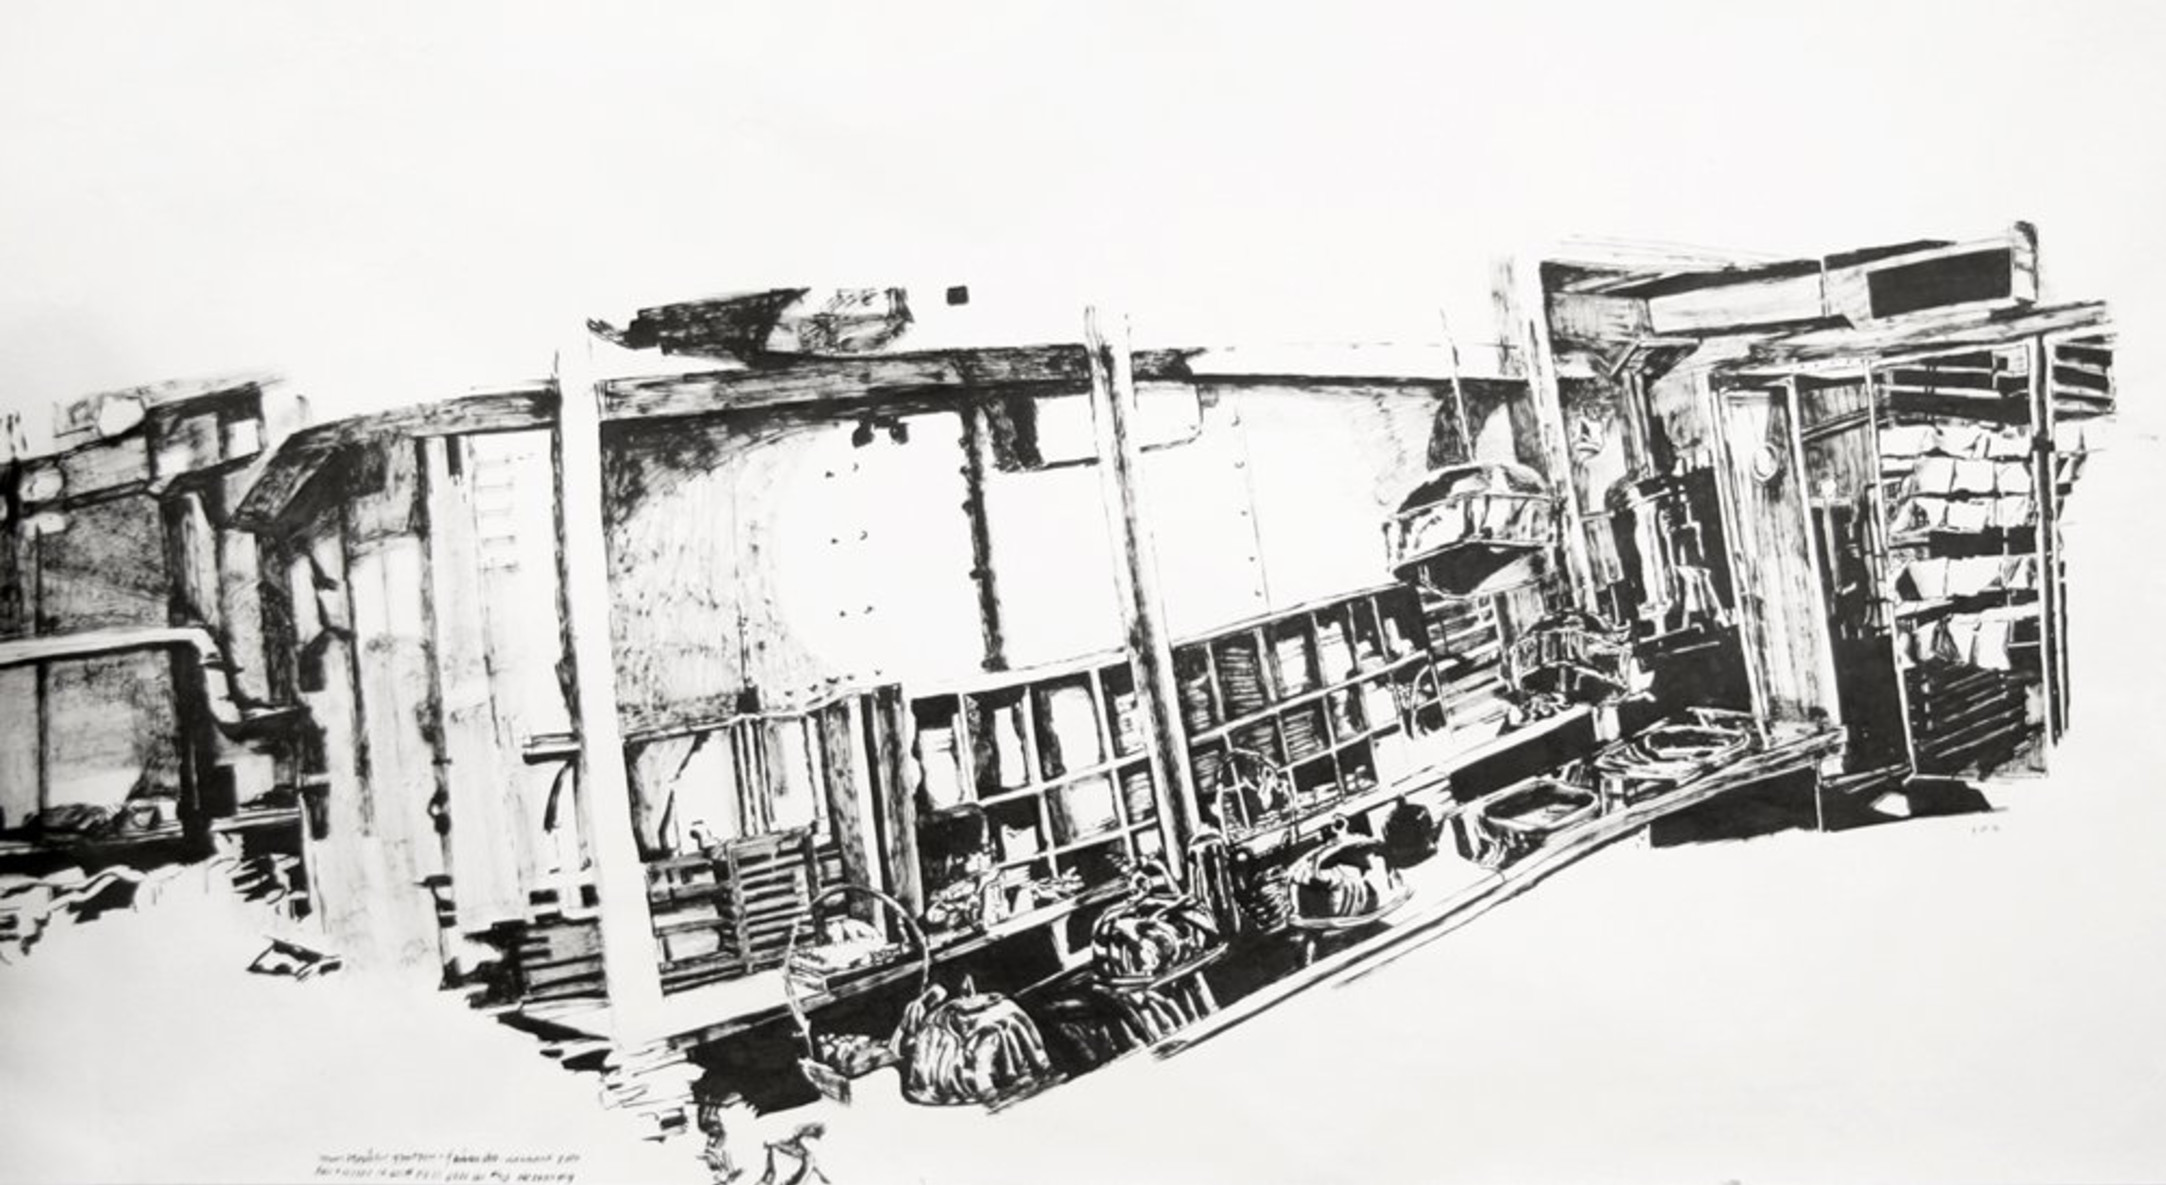 Detail of Dawn Clements, First Class (A Night to Remember, 1959), 2006, Sumi ink on paper, 165 x 985 cm, 65.01 x 388.09 in